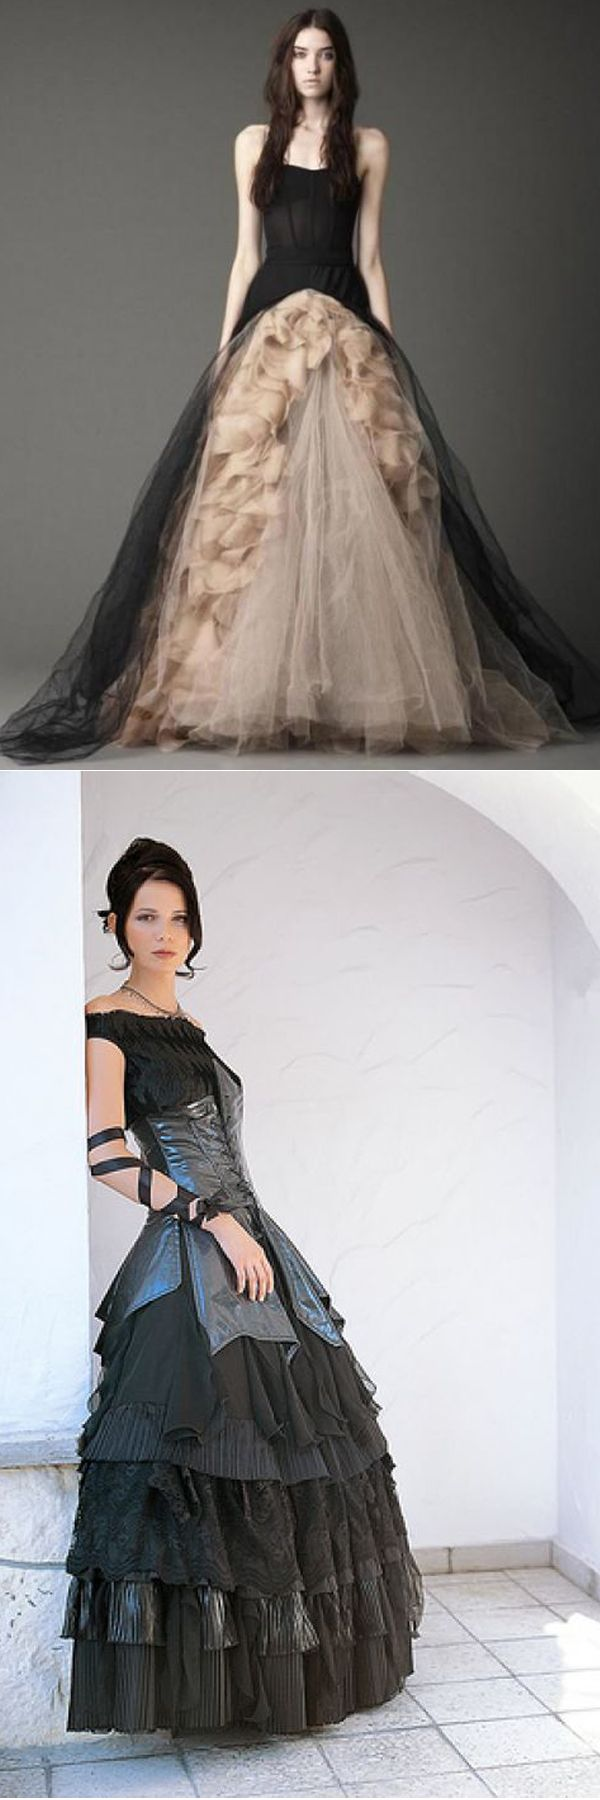 Black and white gothic wedding dresses   Fabulous Gothic Wedding Dress Ideas  Me and Me  Pinterest